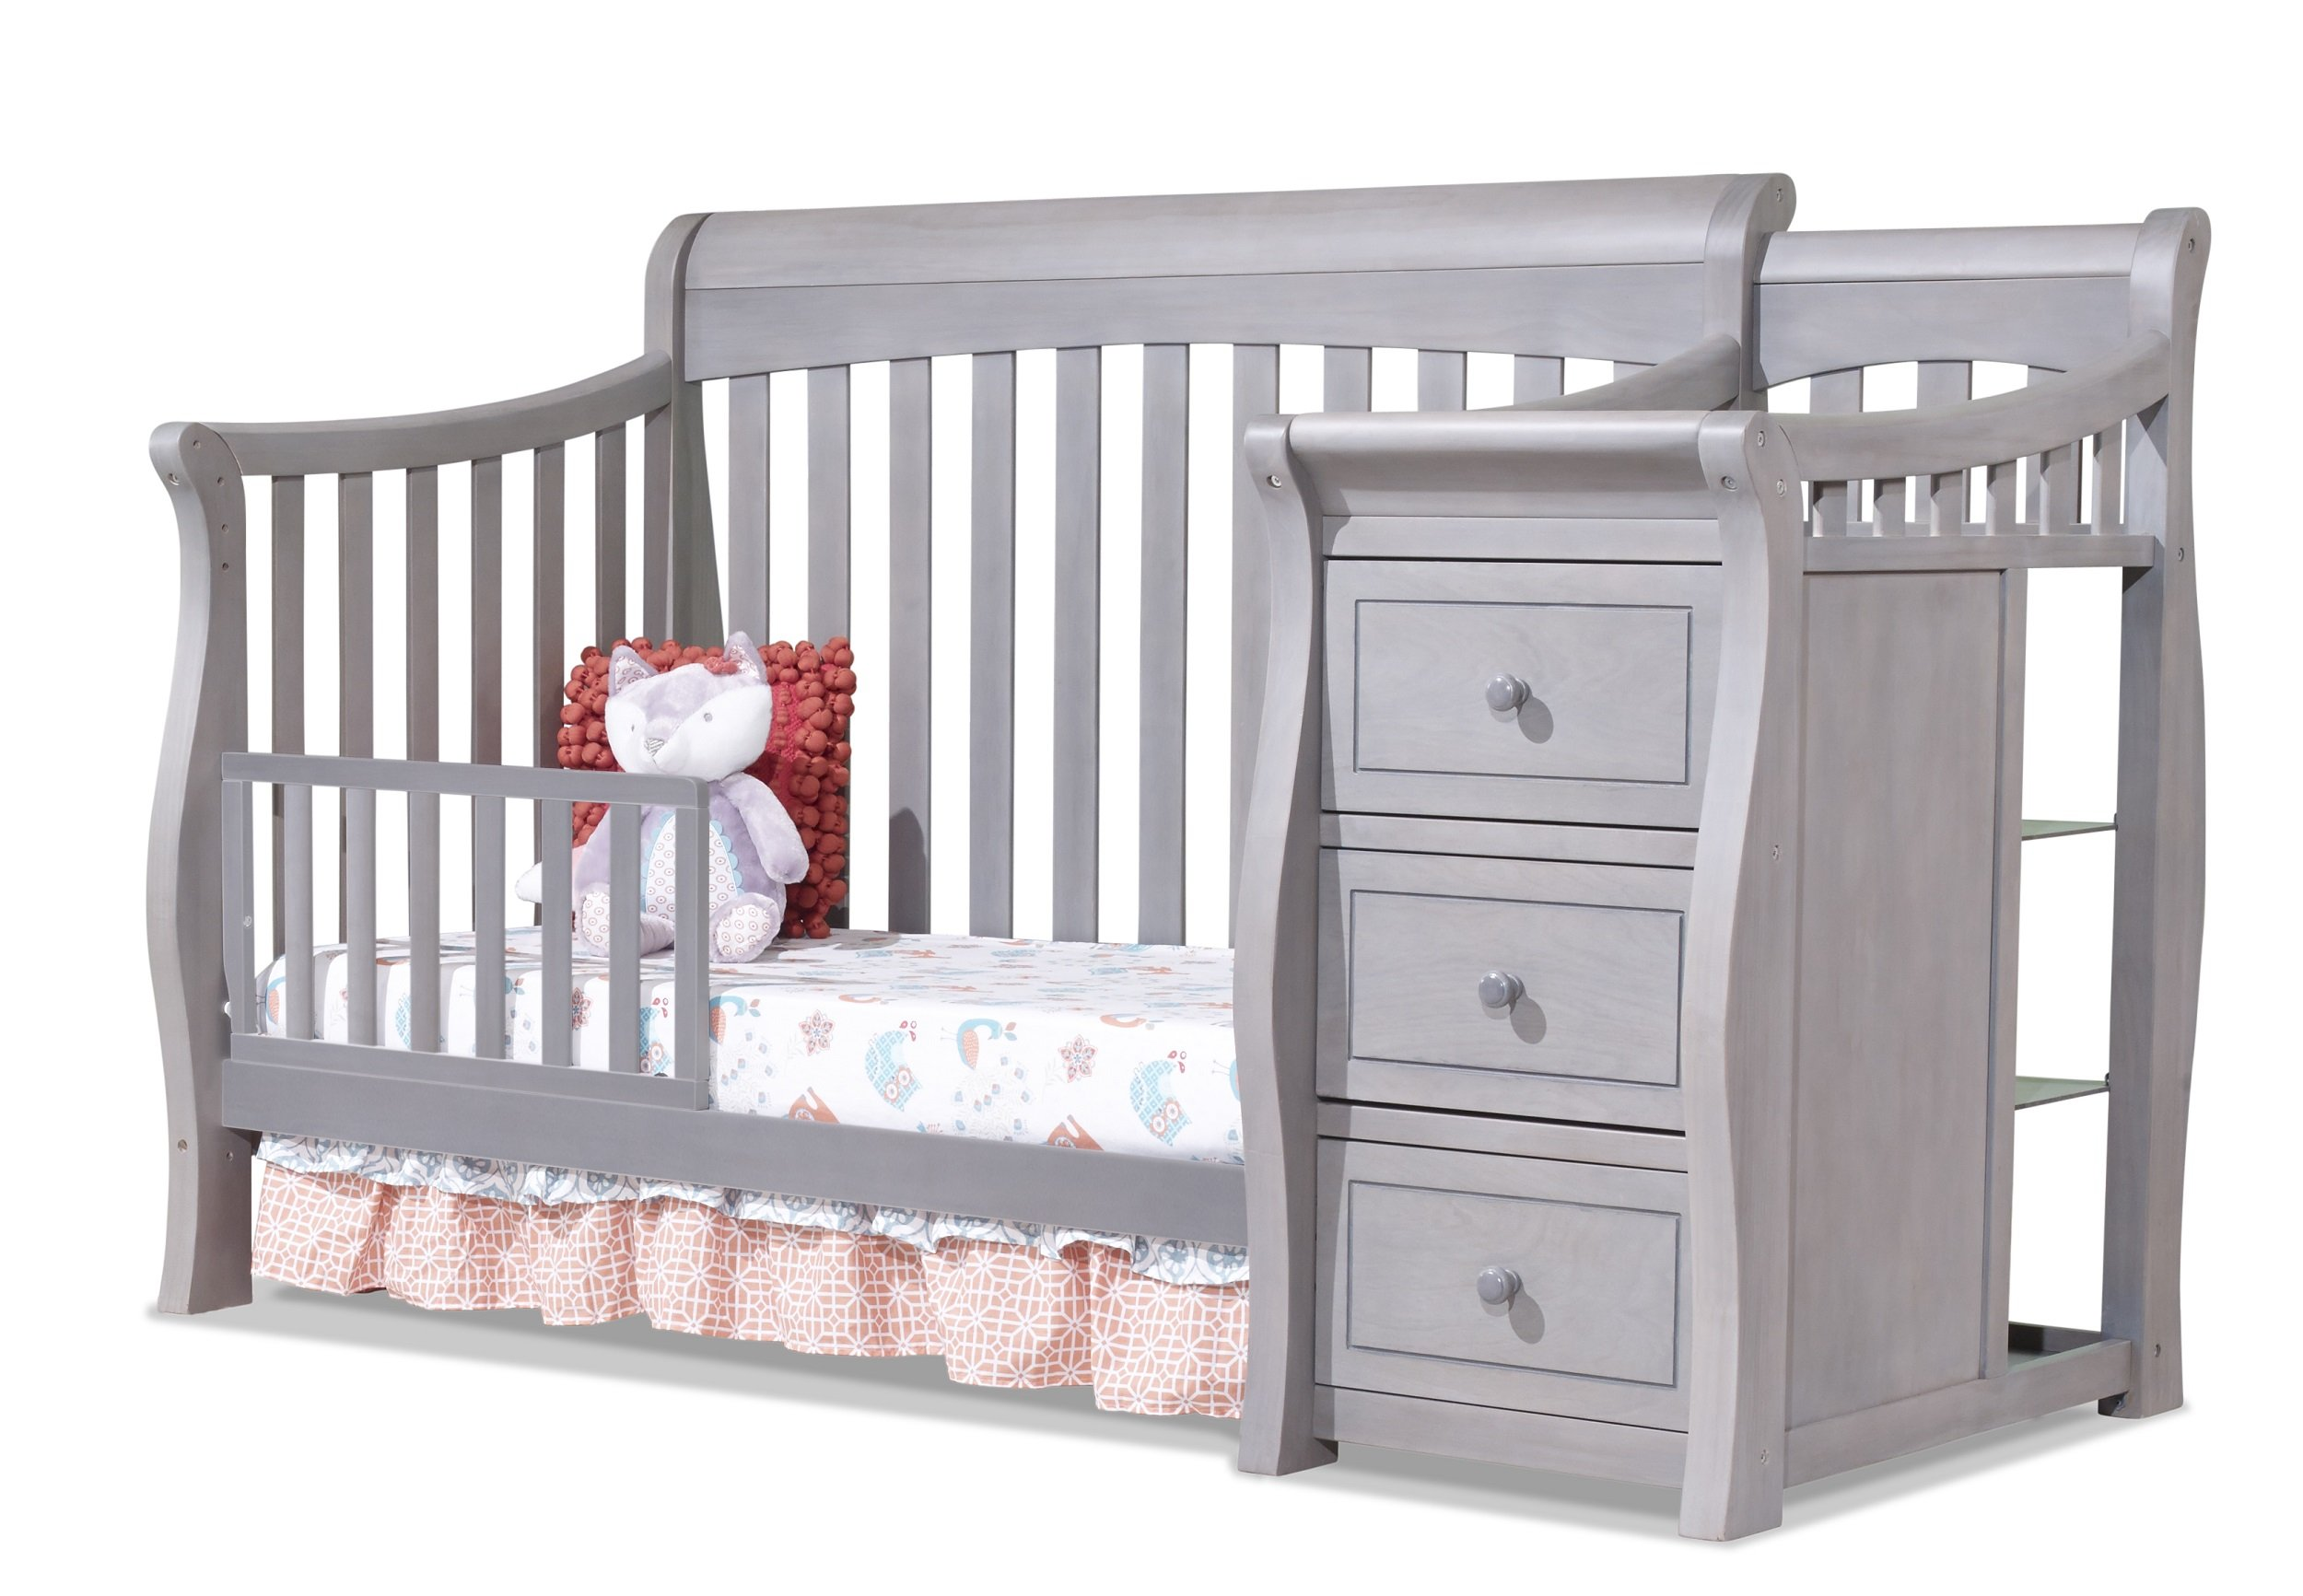 Sorelle Tuscany Toddler Rail, Weathered Gray by Sorelle